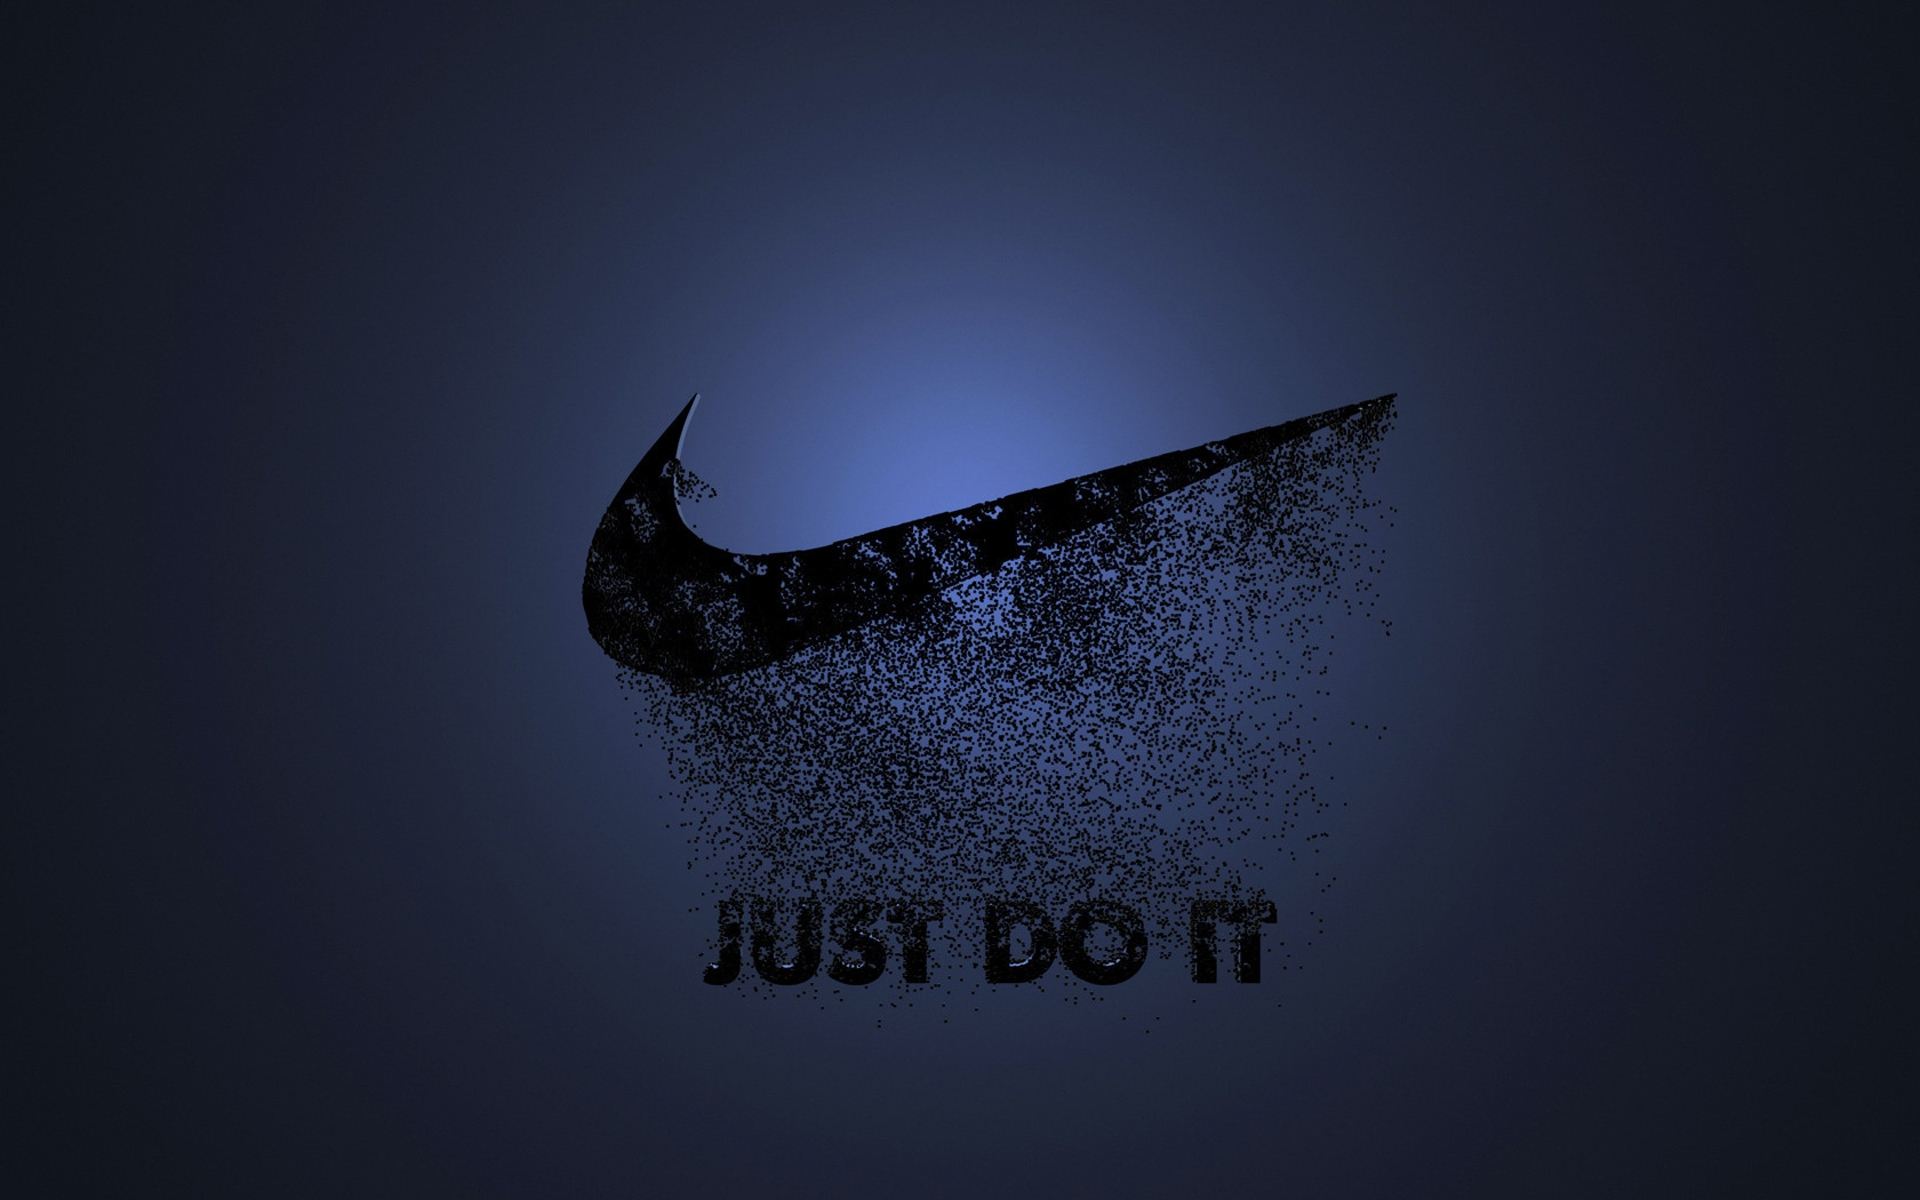 Nike HD Background